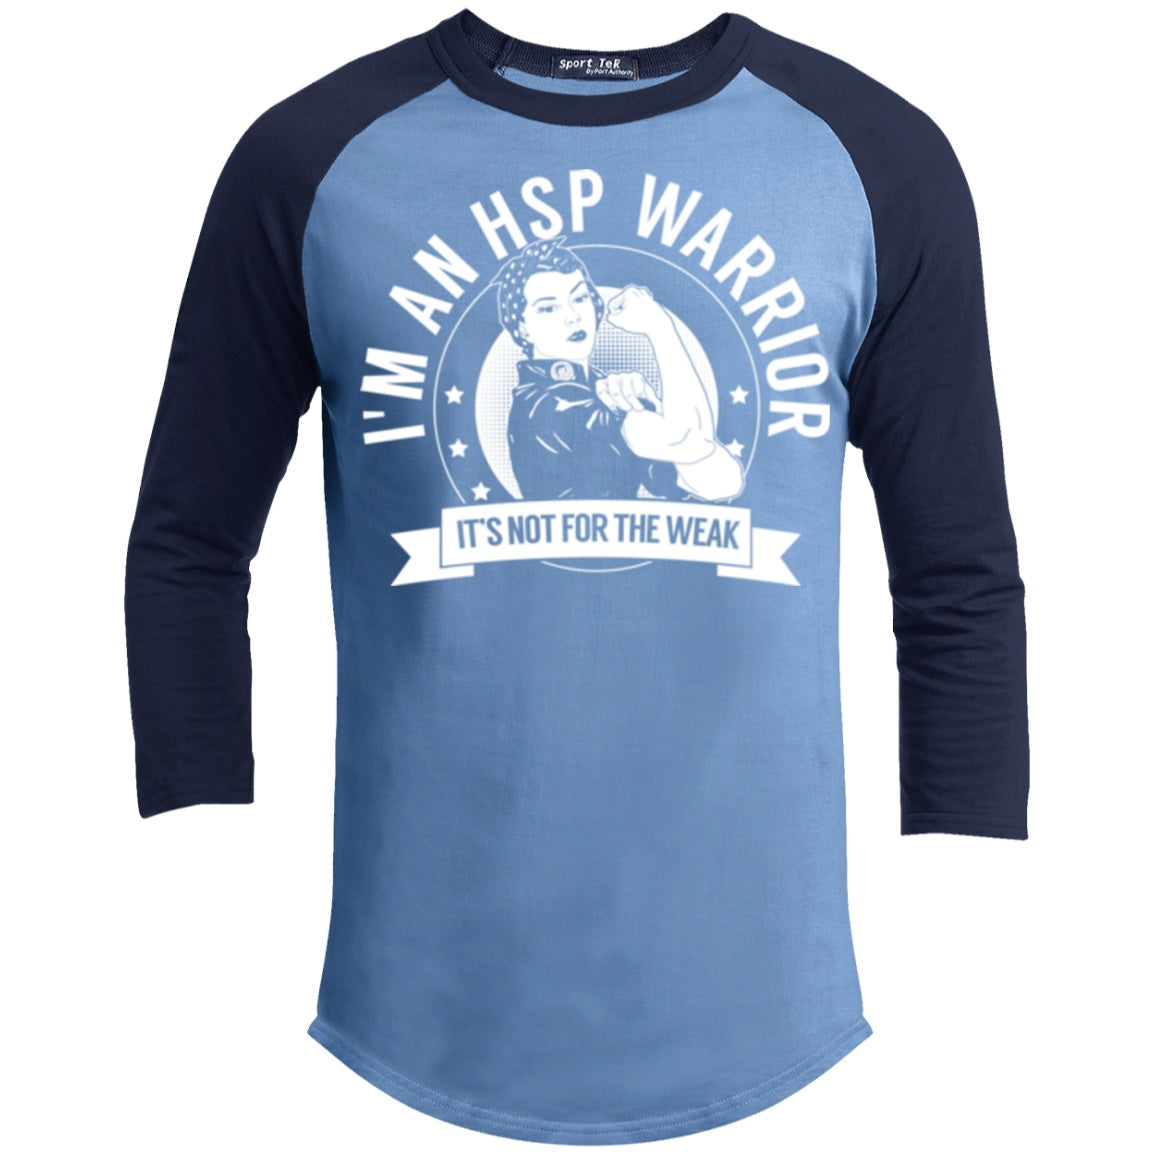 Hereditary Spastic Paraparesis - HSP Warrior Not For The Weak Baseball Shirt - The Unchargeables